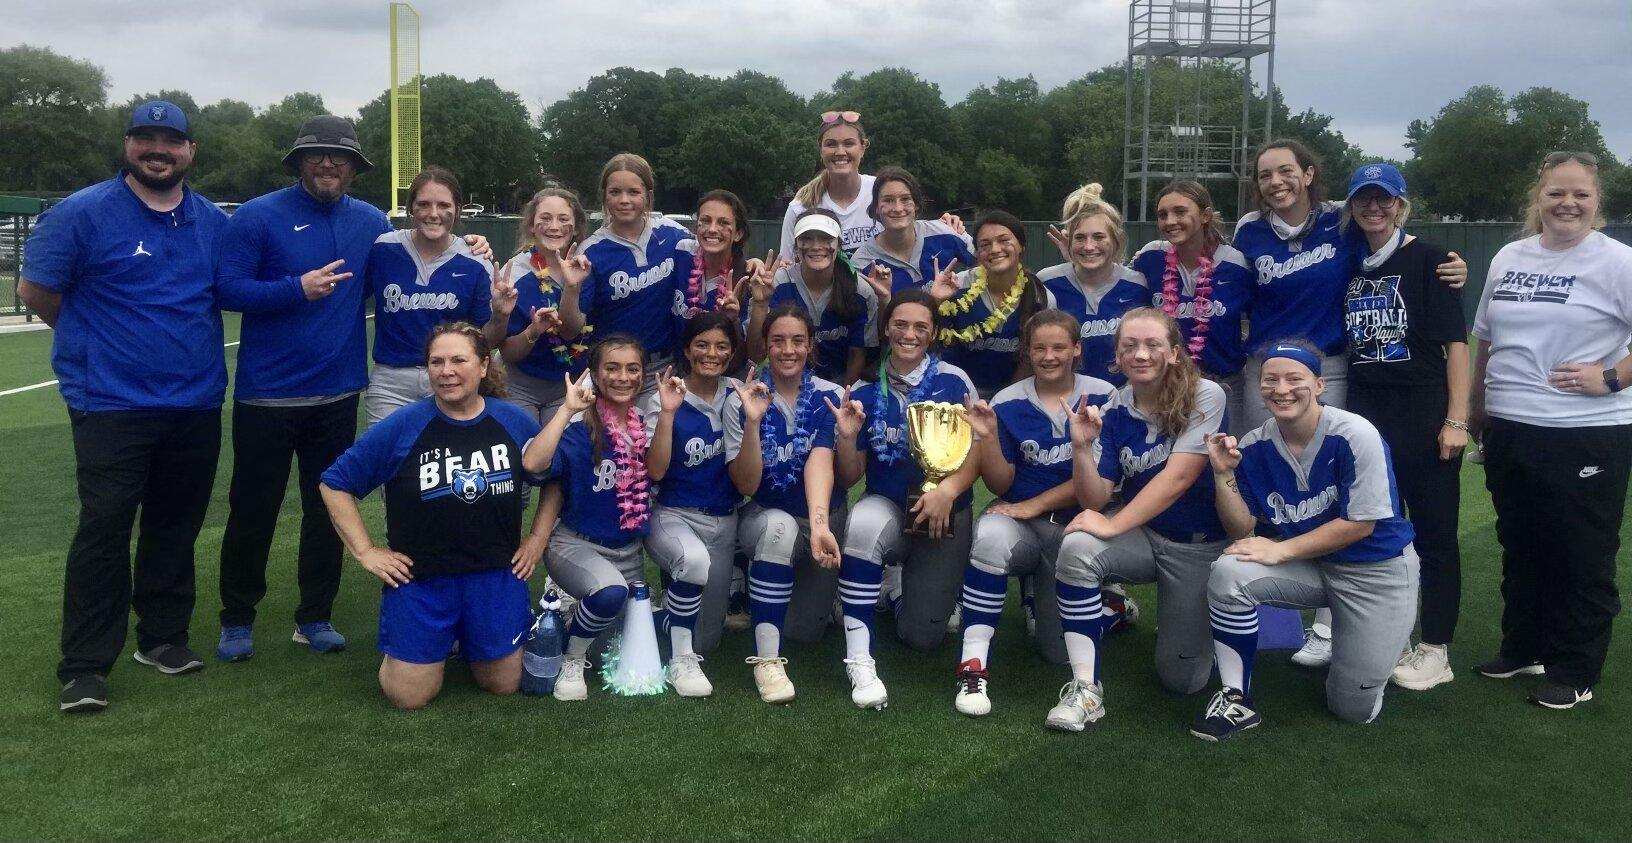 The Brewer Lady Bears softball team won the Bi-District Championship with a win 2-1 win over Richland.